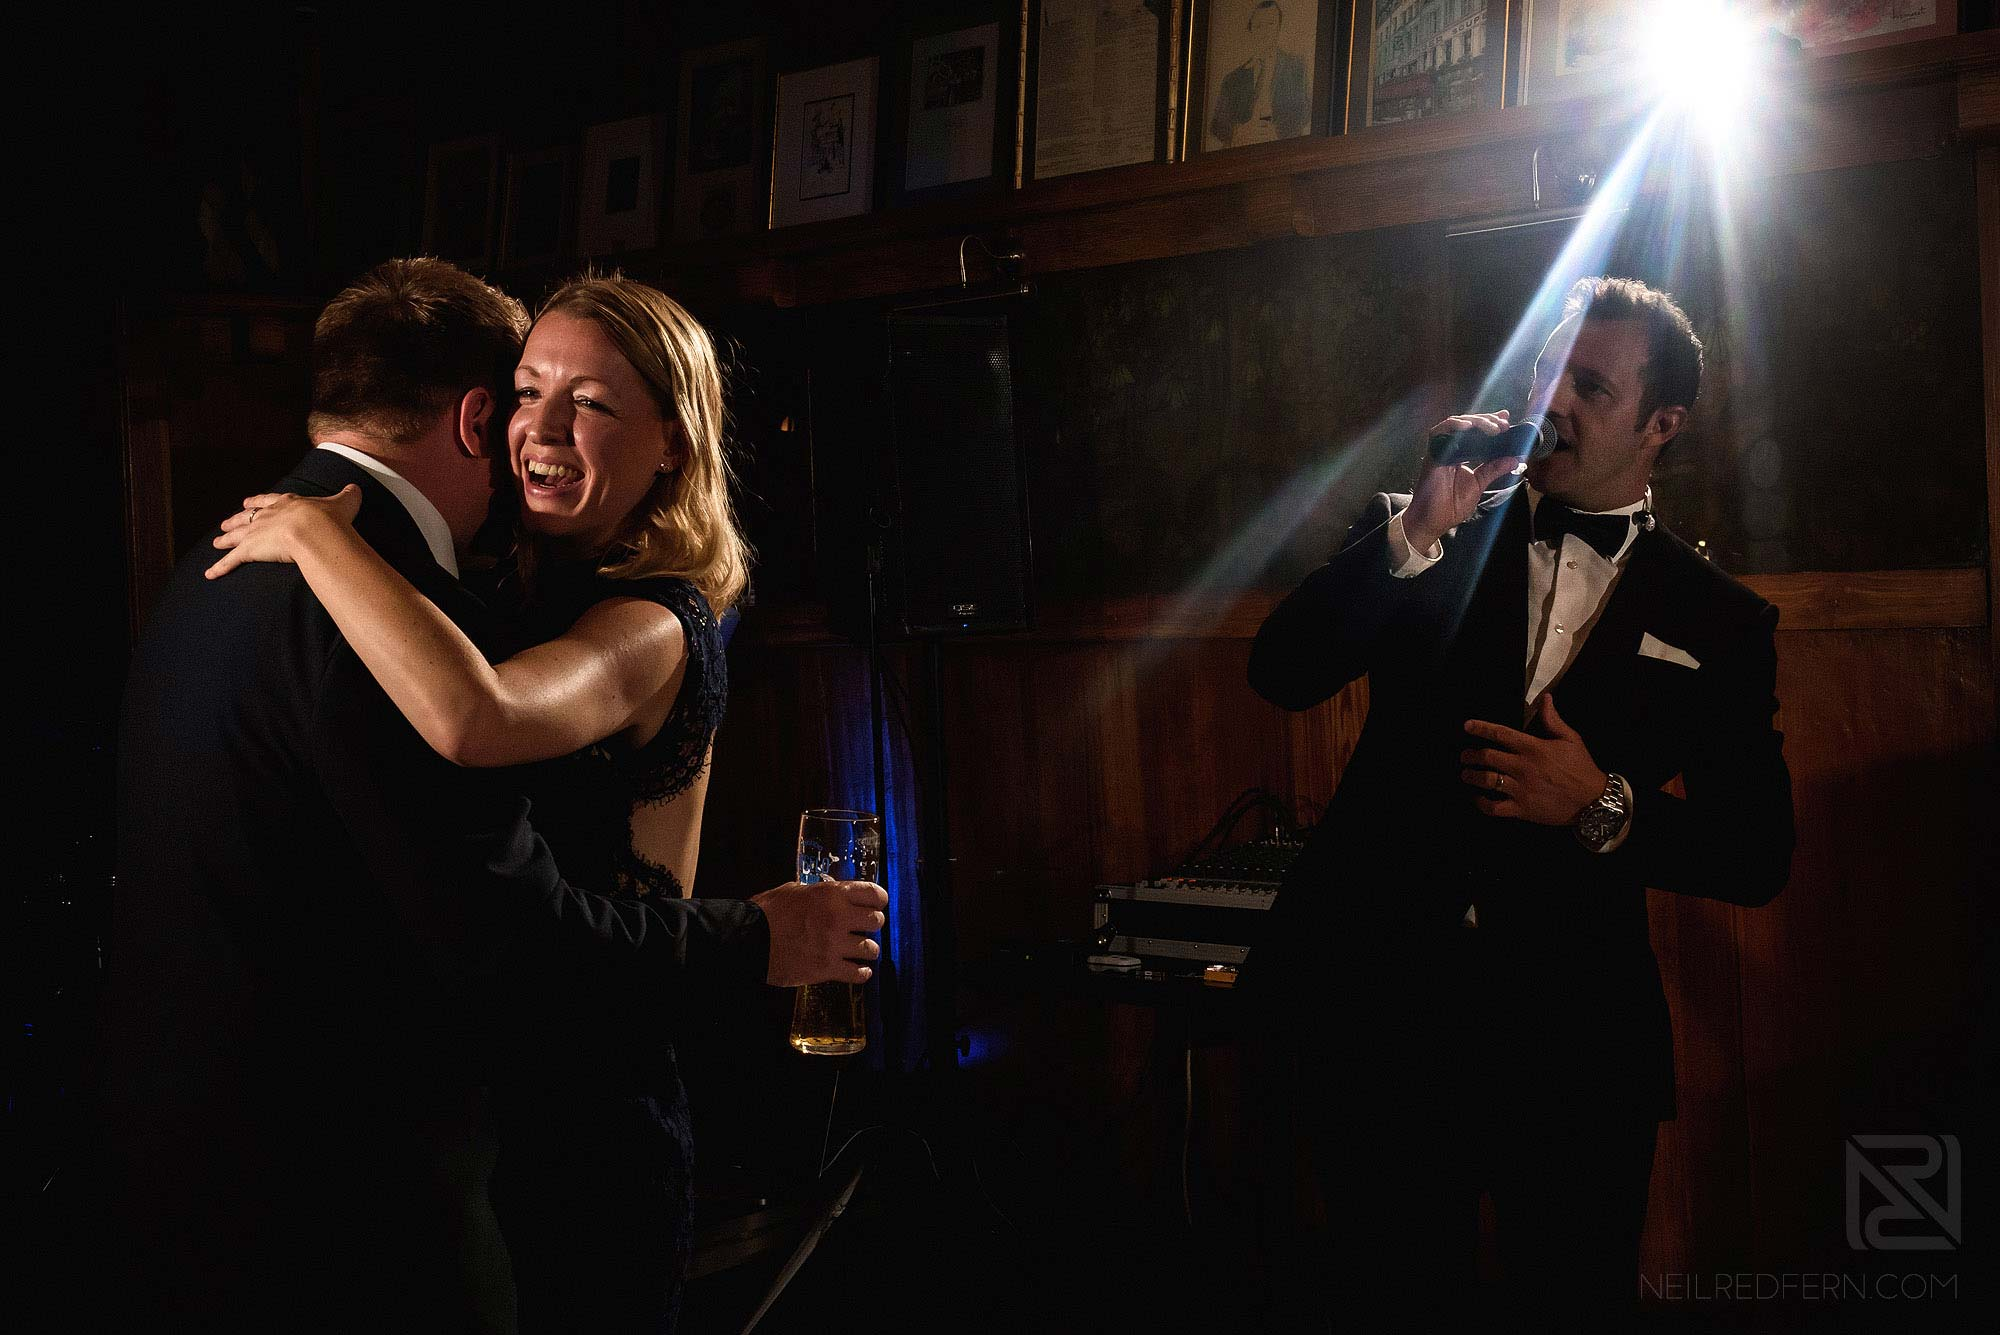 wedding guests dancing during wedding reception at the Belle Epoque